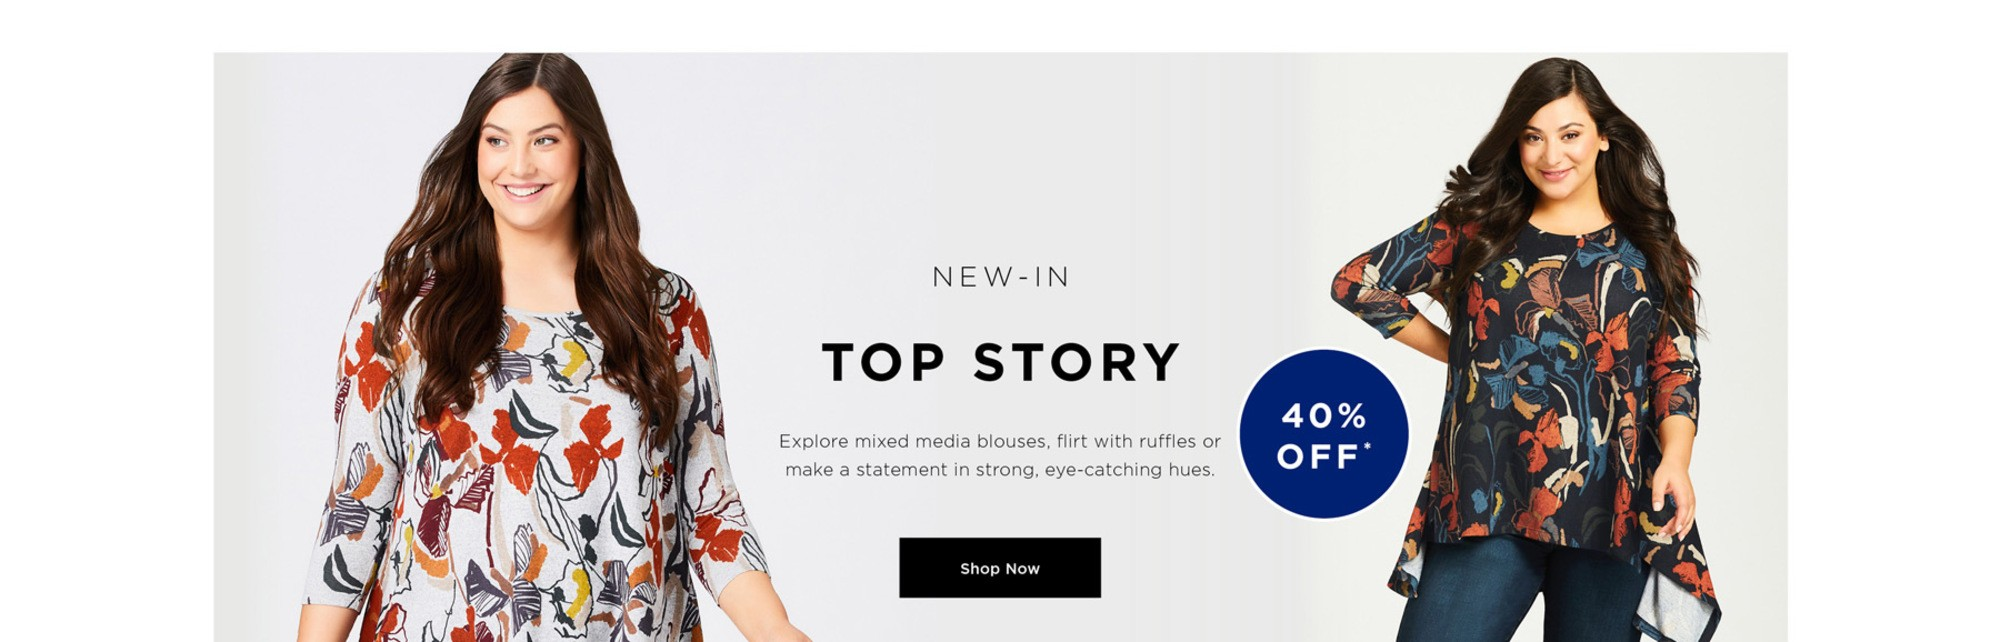 NEW IN - TOP STORY - Explore mixed media blouses, flirt with ruffles or make a statement in strong, eye-catching hues - 40% OFF - SHOP NOW